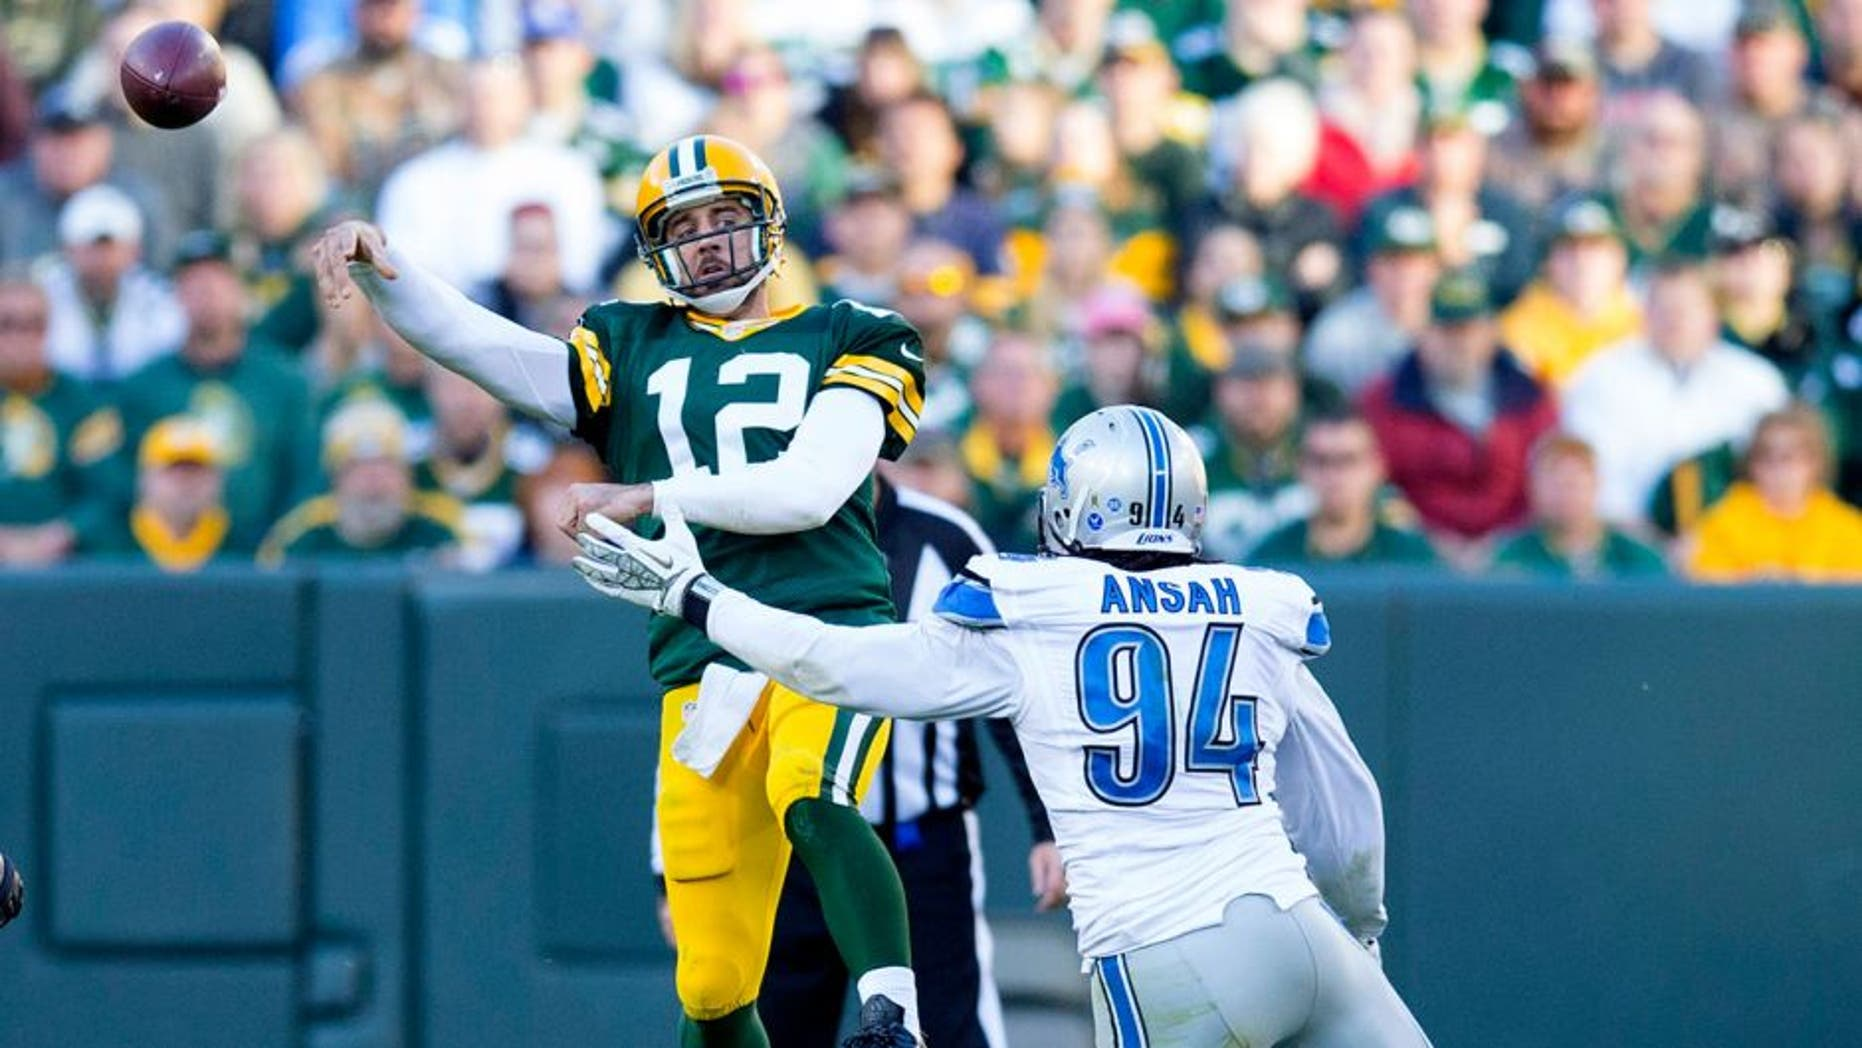 Nov 15, 2015; Green Bay, WI, USA; Green Bay Packers quarterback Aaron Rodgers (12) throws a pass under pressure from Detroit Lions defensive end Ezekiel Ansah (94) during the fourth quarter at Lambeau Field. Detroit won 18-16. Mandatory Credit: Jeff Hanisch-USA TODAY Sports